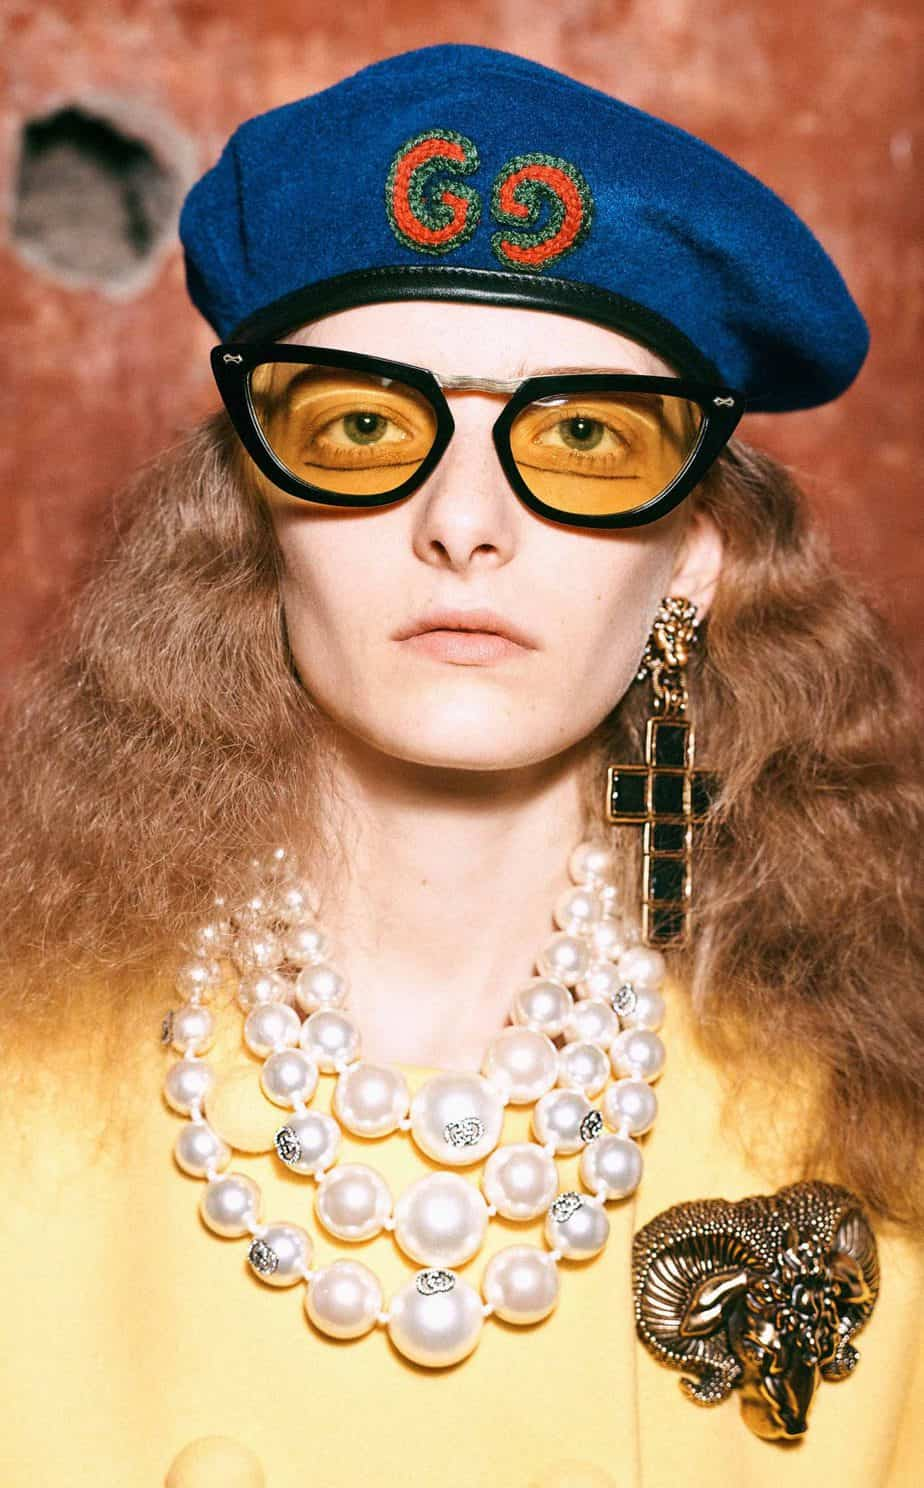 GUCCI, FALL 2019. WOMEN'S FASHION, Photographer Harmony Korine, Art Director, Christopher Simmonds - 29